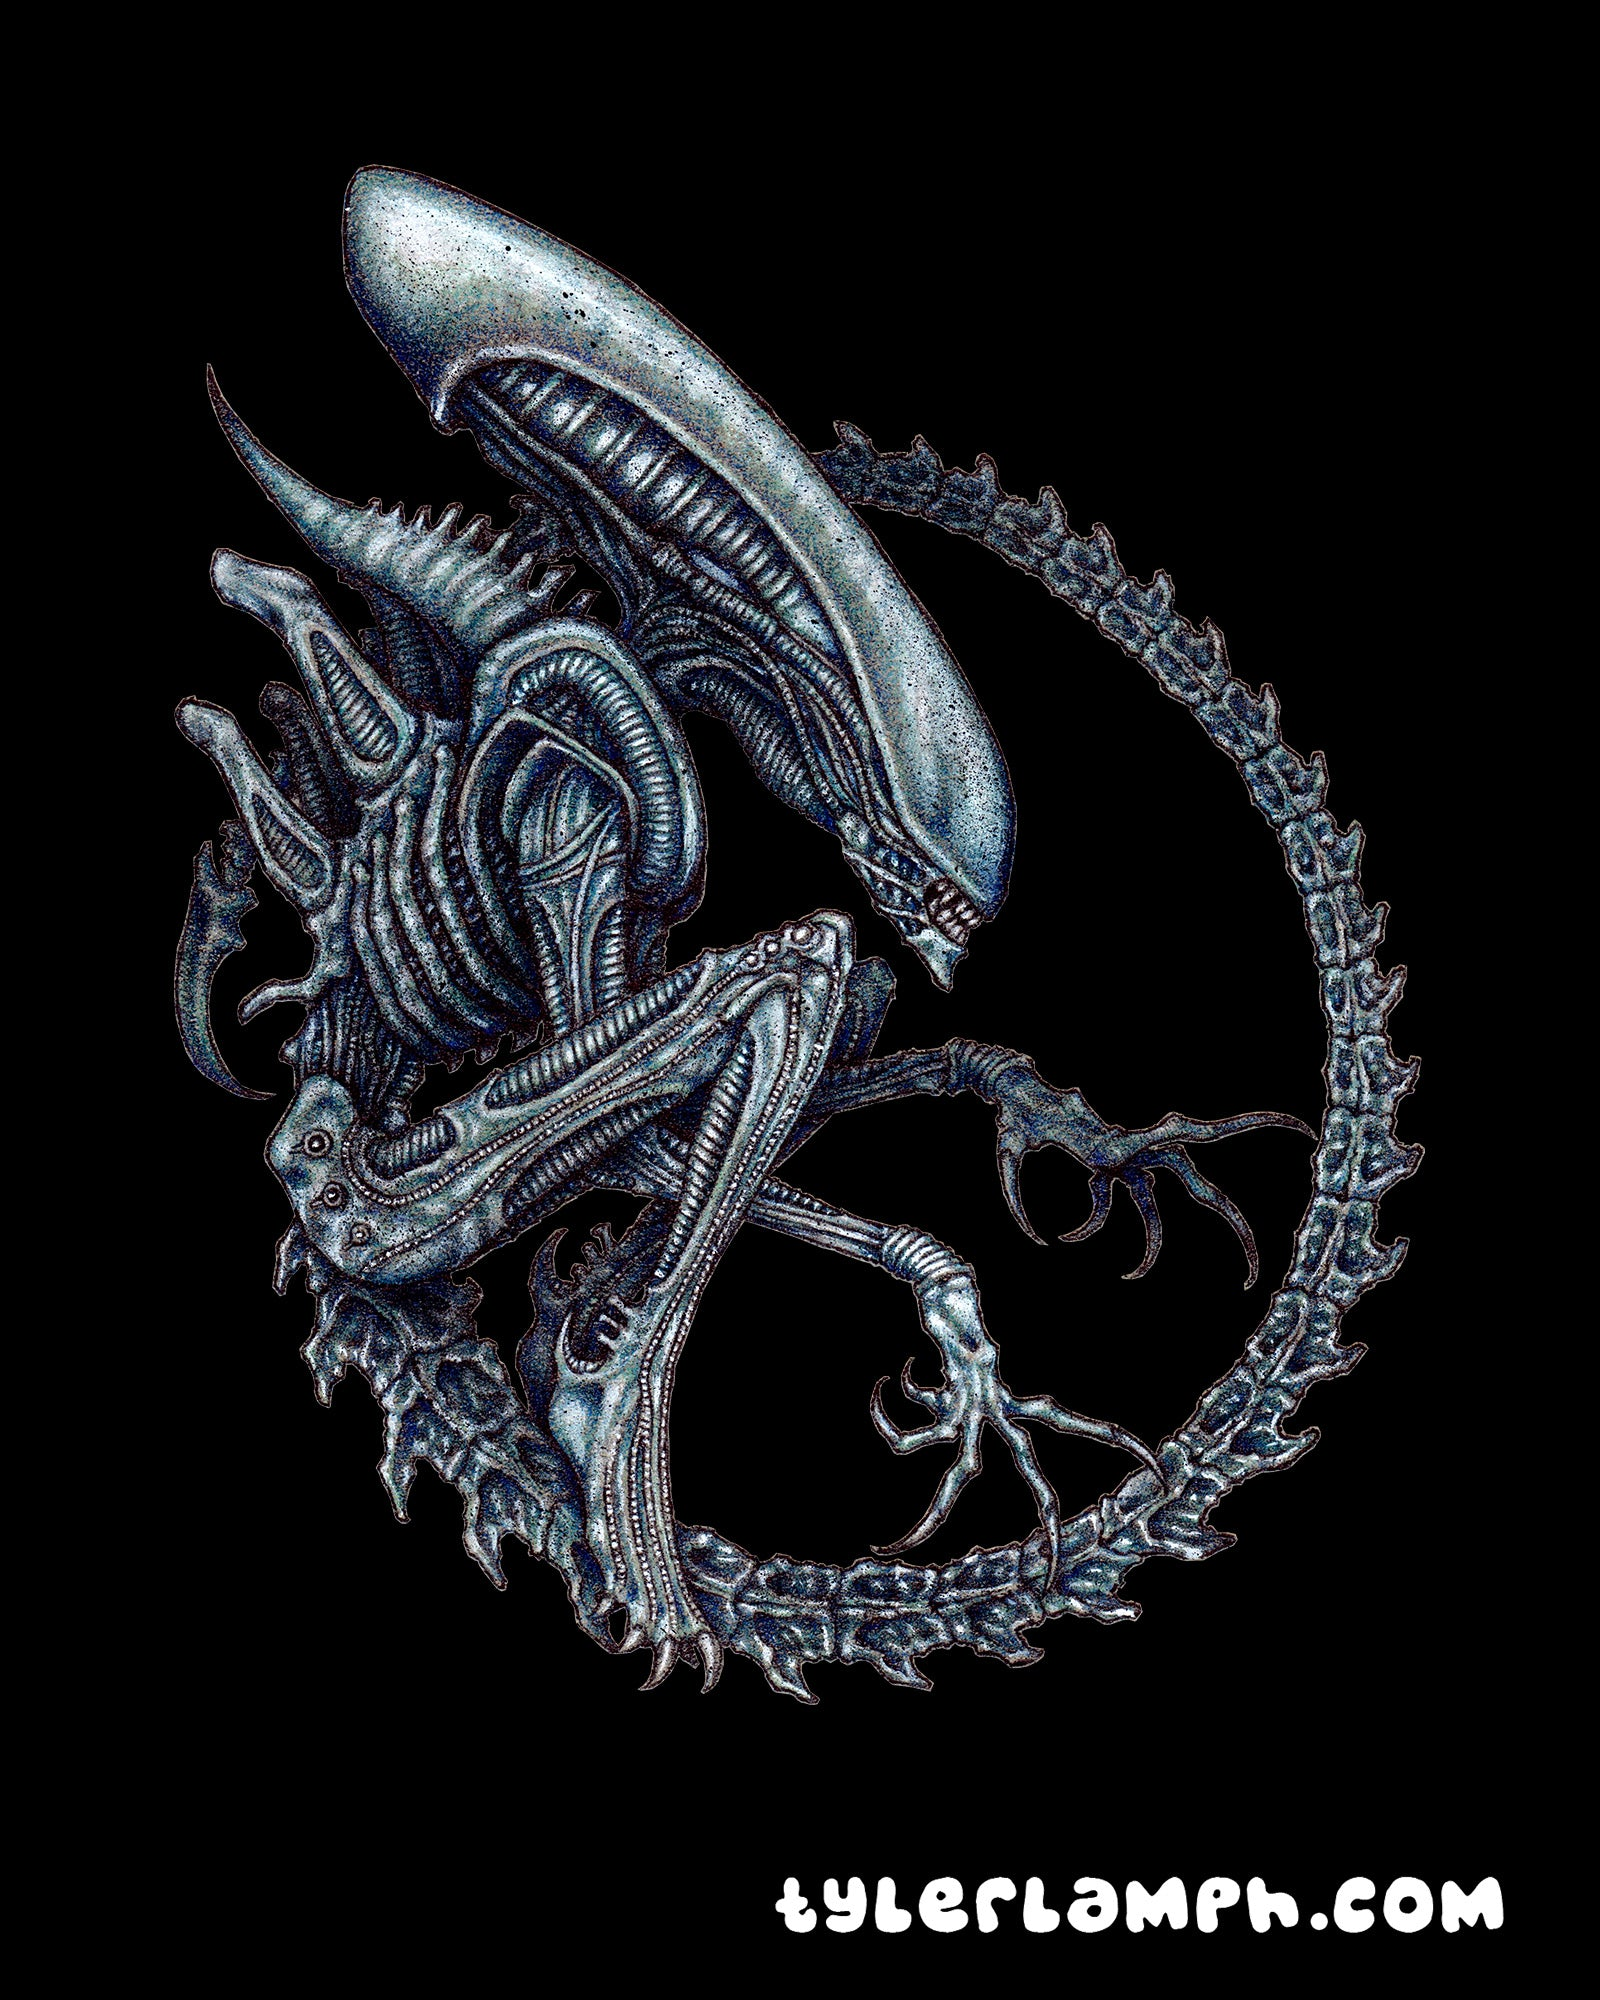 Xenomorph - Colored Version